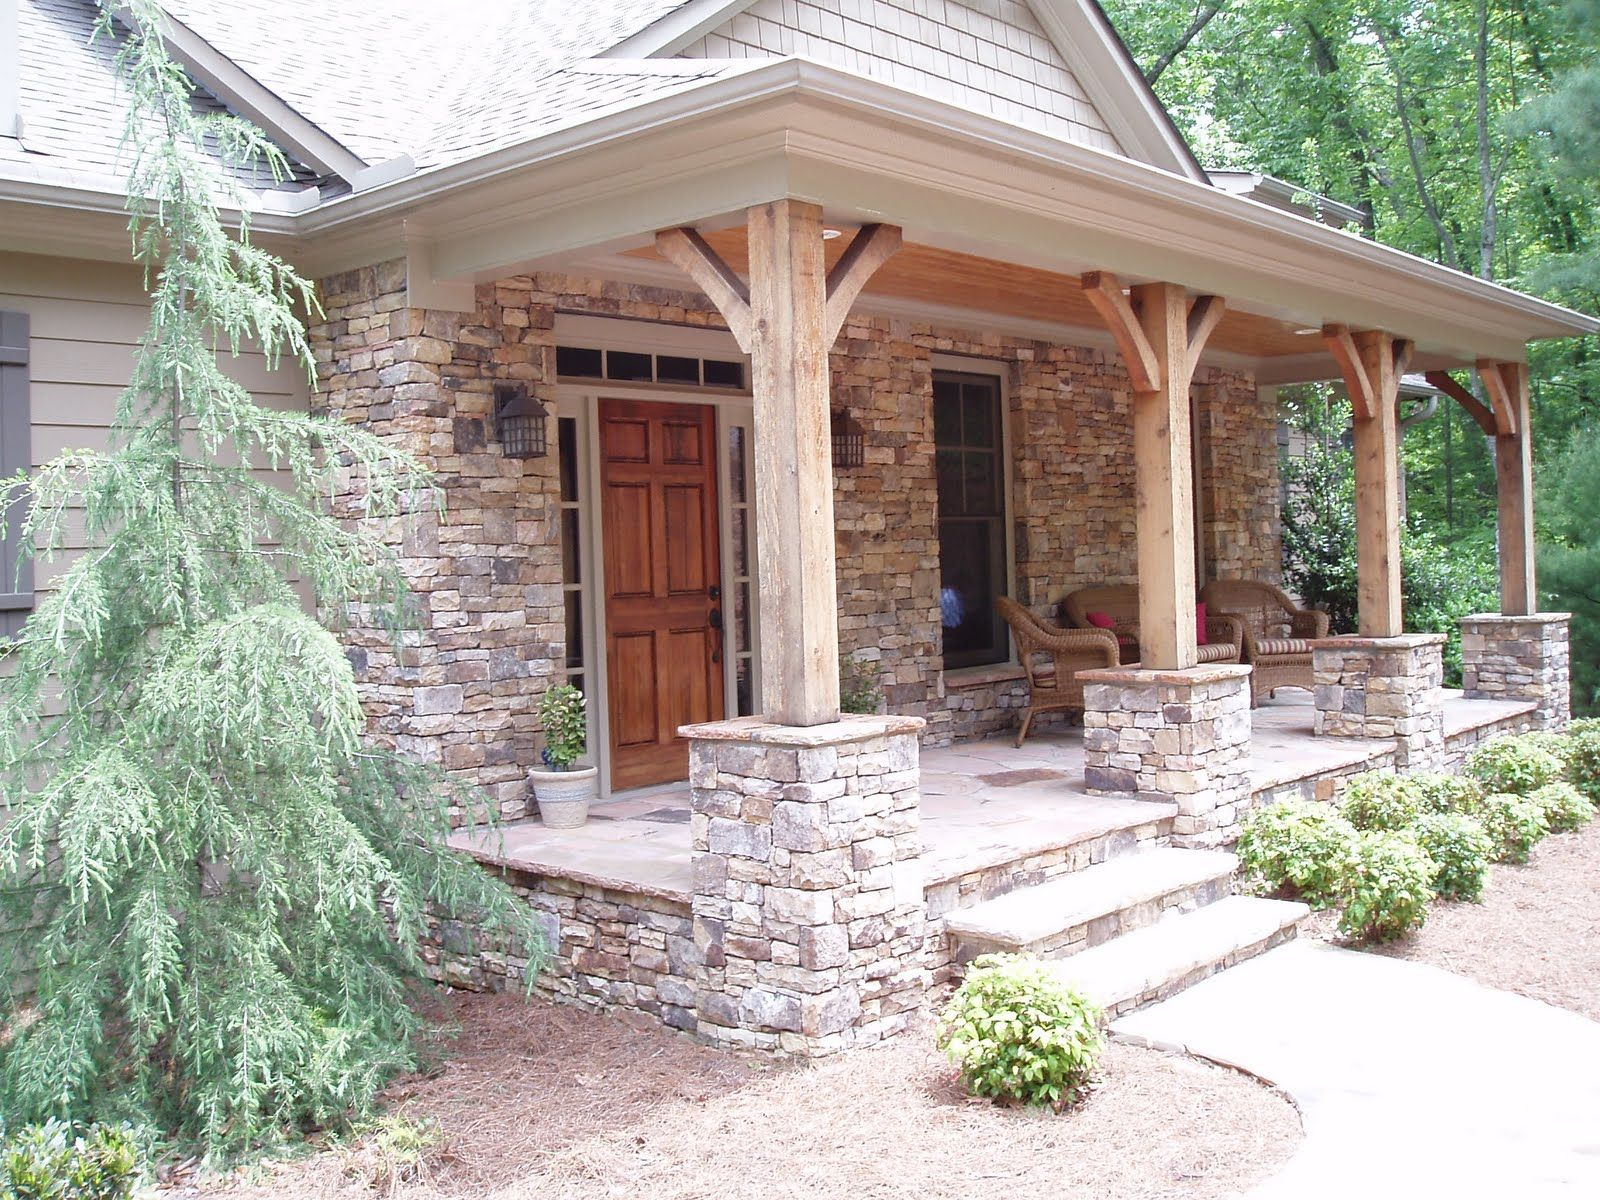 Stacked Stone To Replace Brick On Exterior Column Bases Also Like The Shingles Above No Rustic Columns